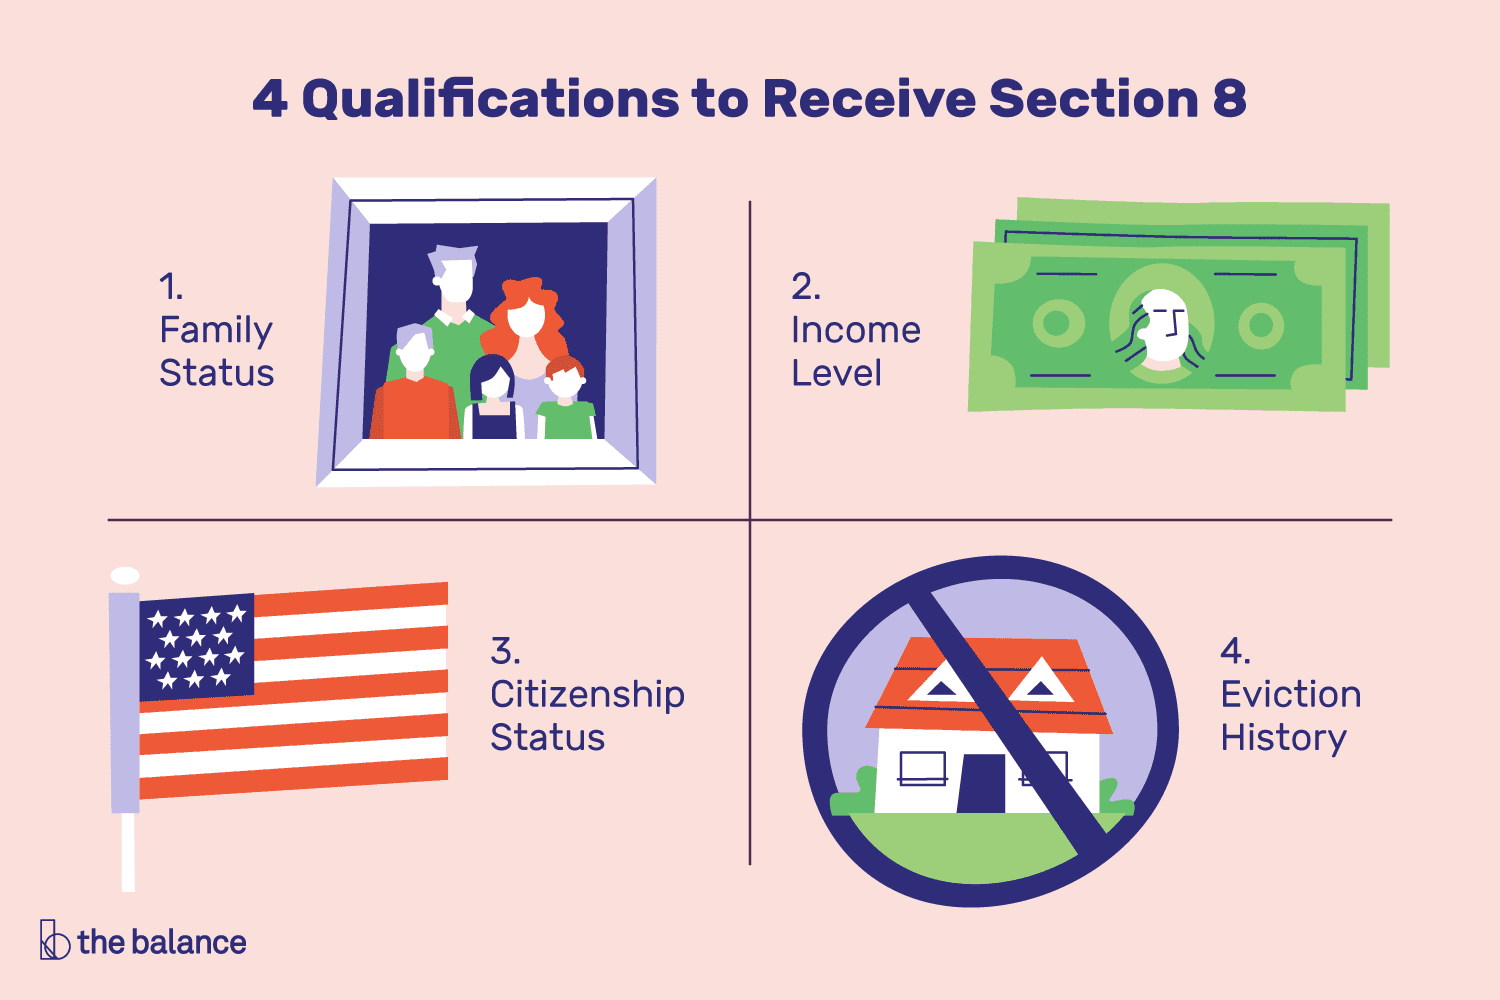 4 qualifications to receive section 8